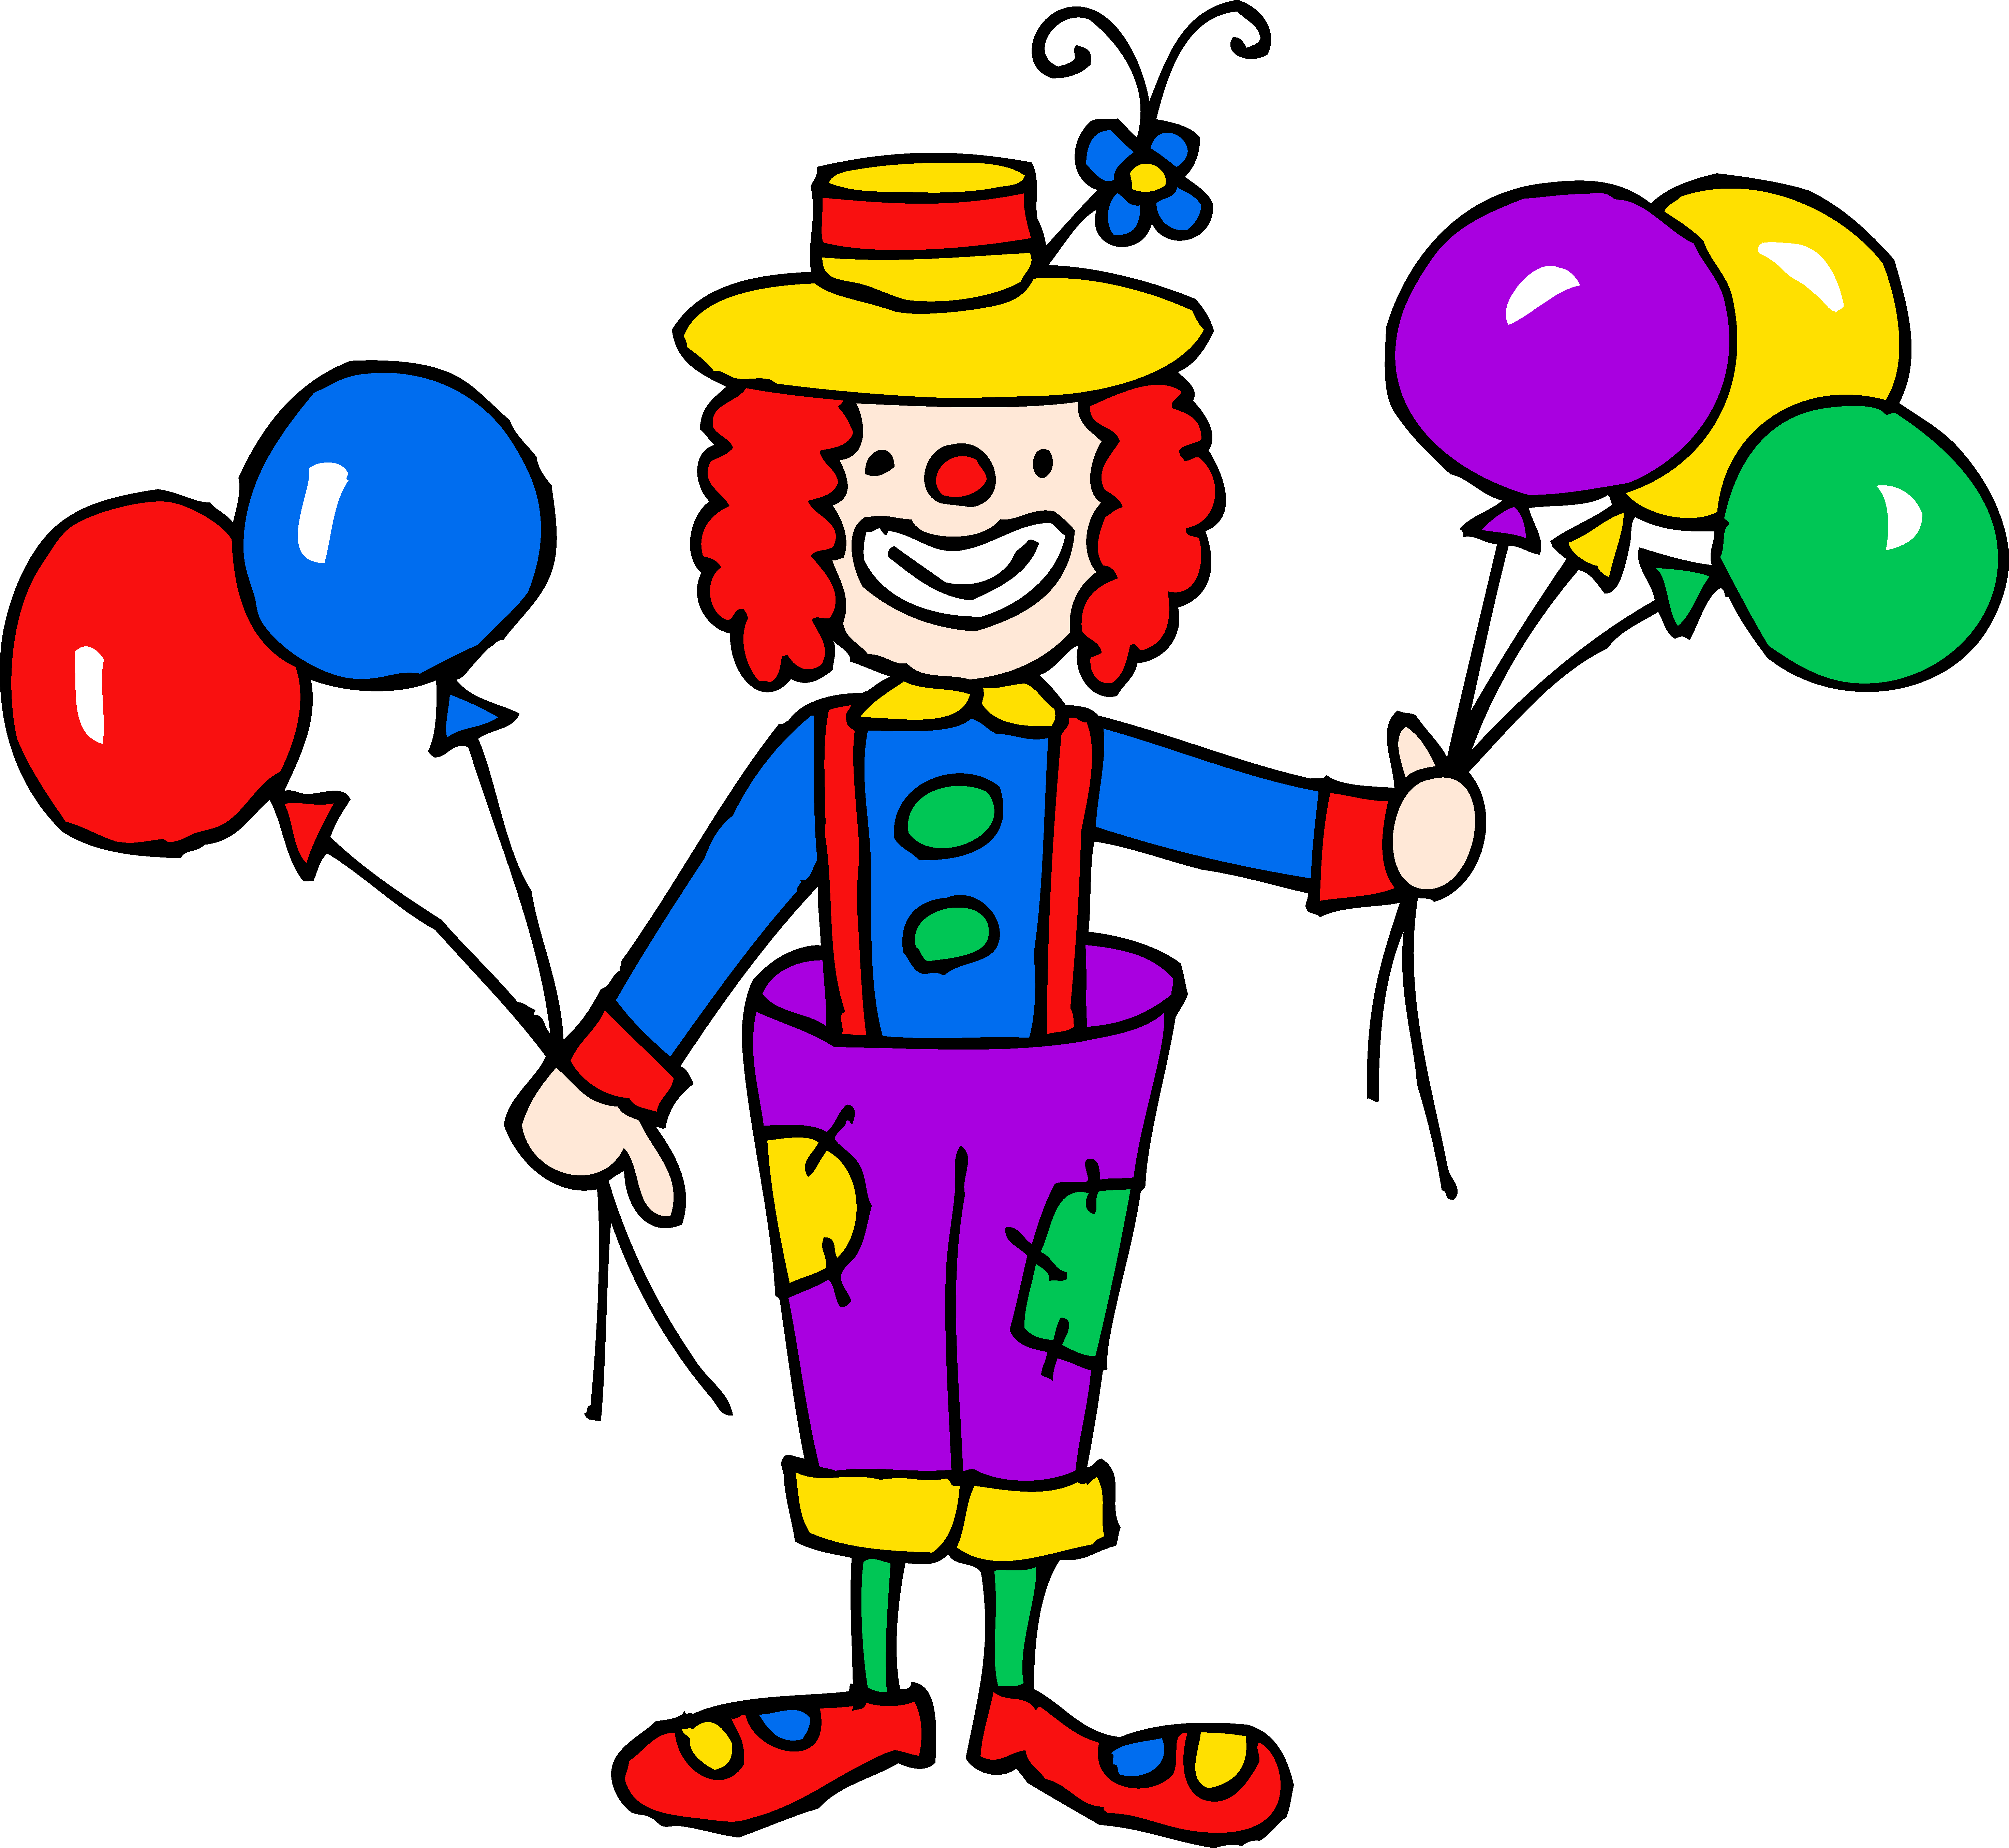 Clown clipart Clown Circus Clipart Images circus%20clown%20clipart